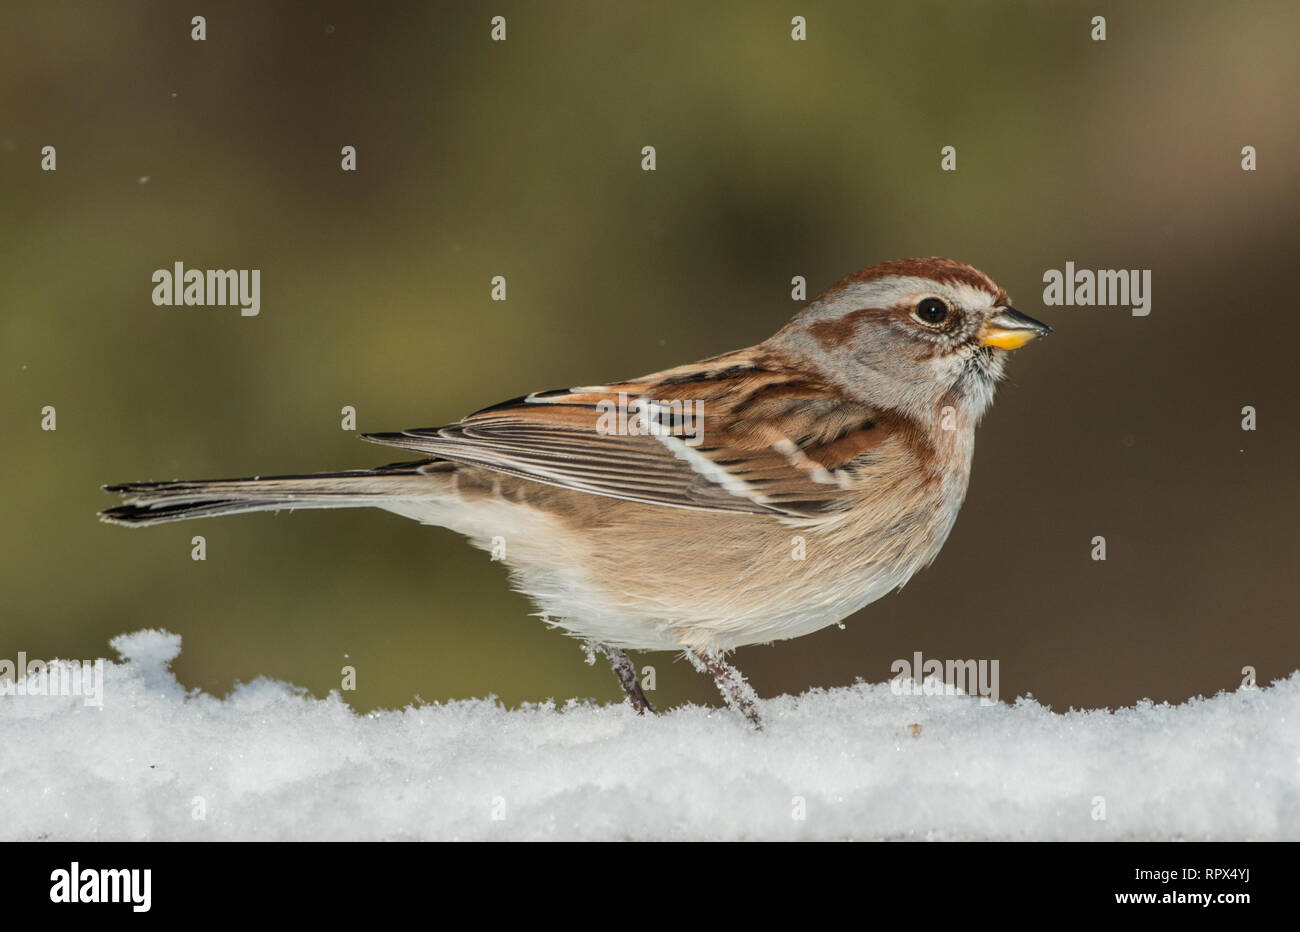 zoology / animals, avian / bird (aves), American Tree Sparrow (Spizella arborea) in winter near Thornt, Additional-Rights-Clearance-Info-Not-Available - Stock Image